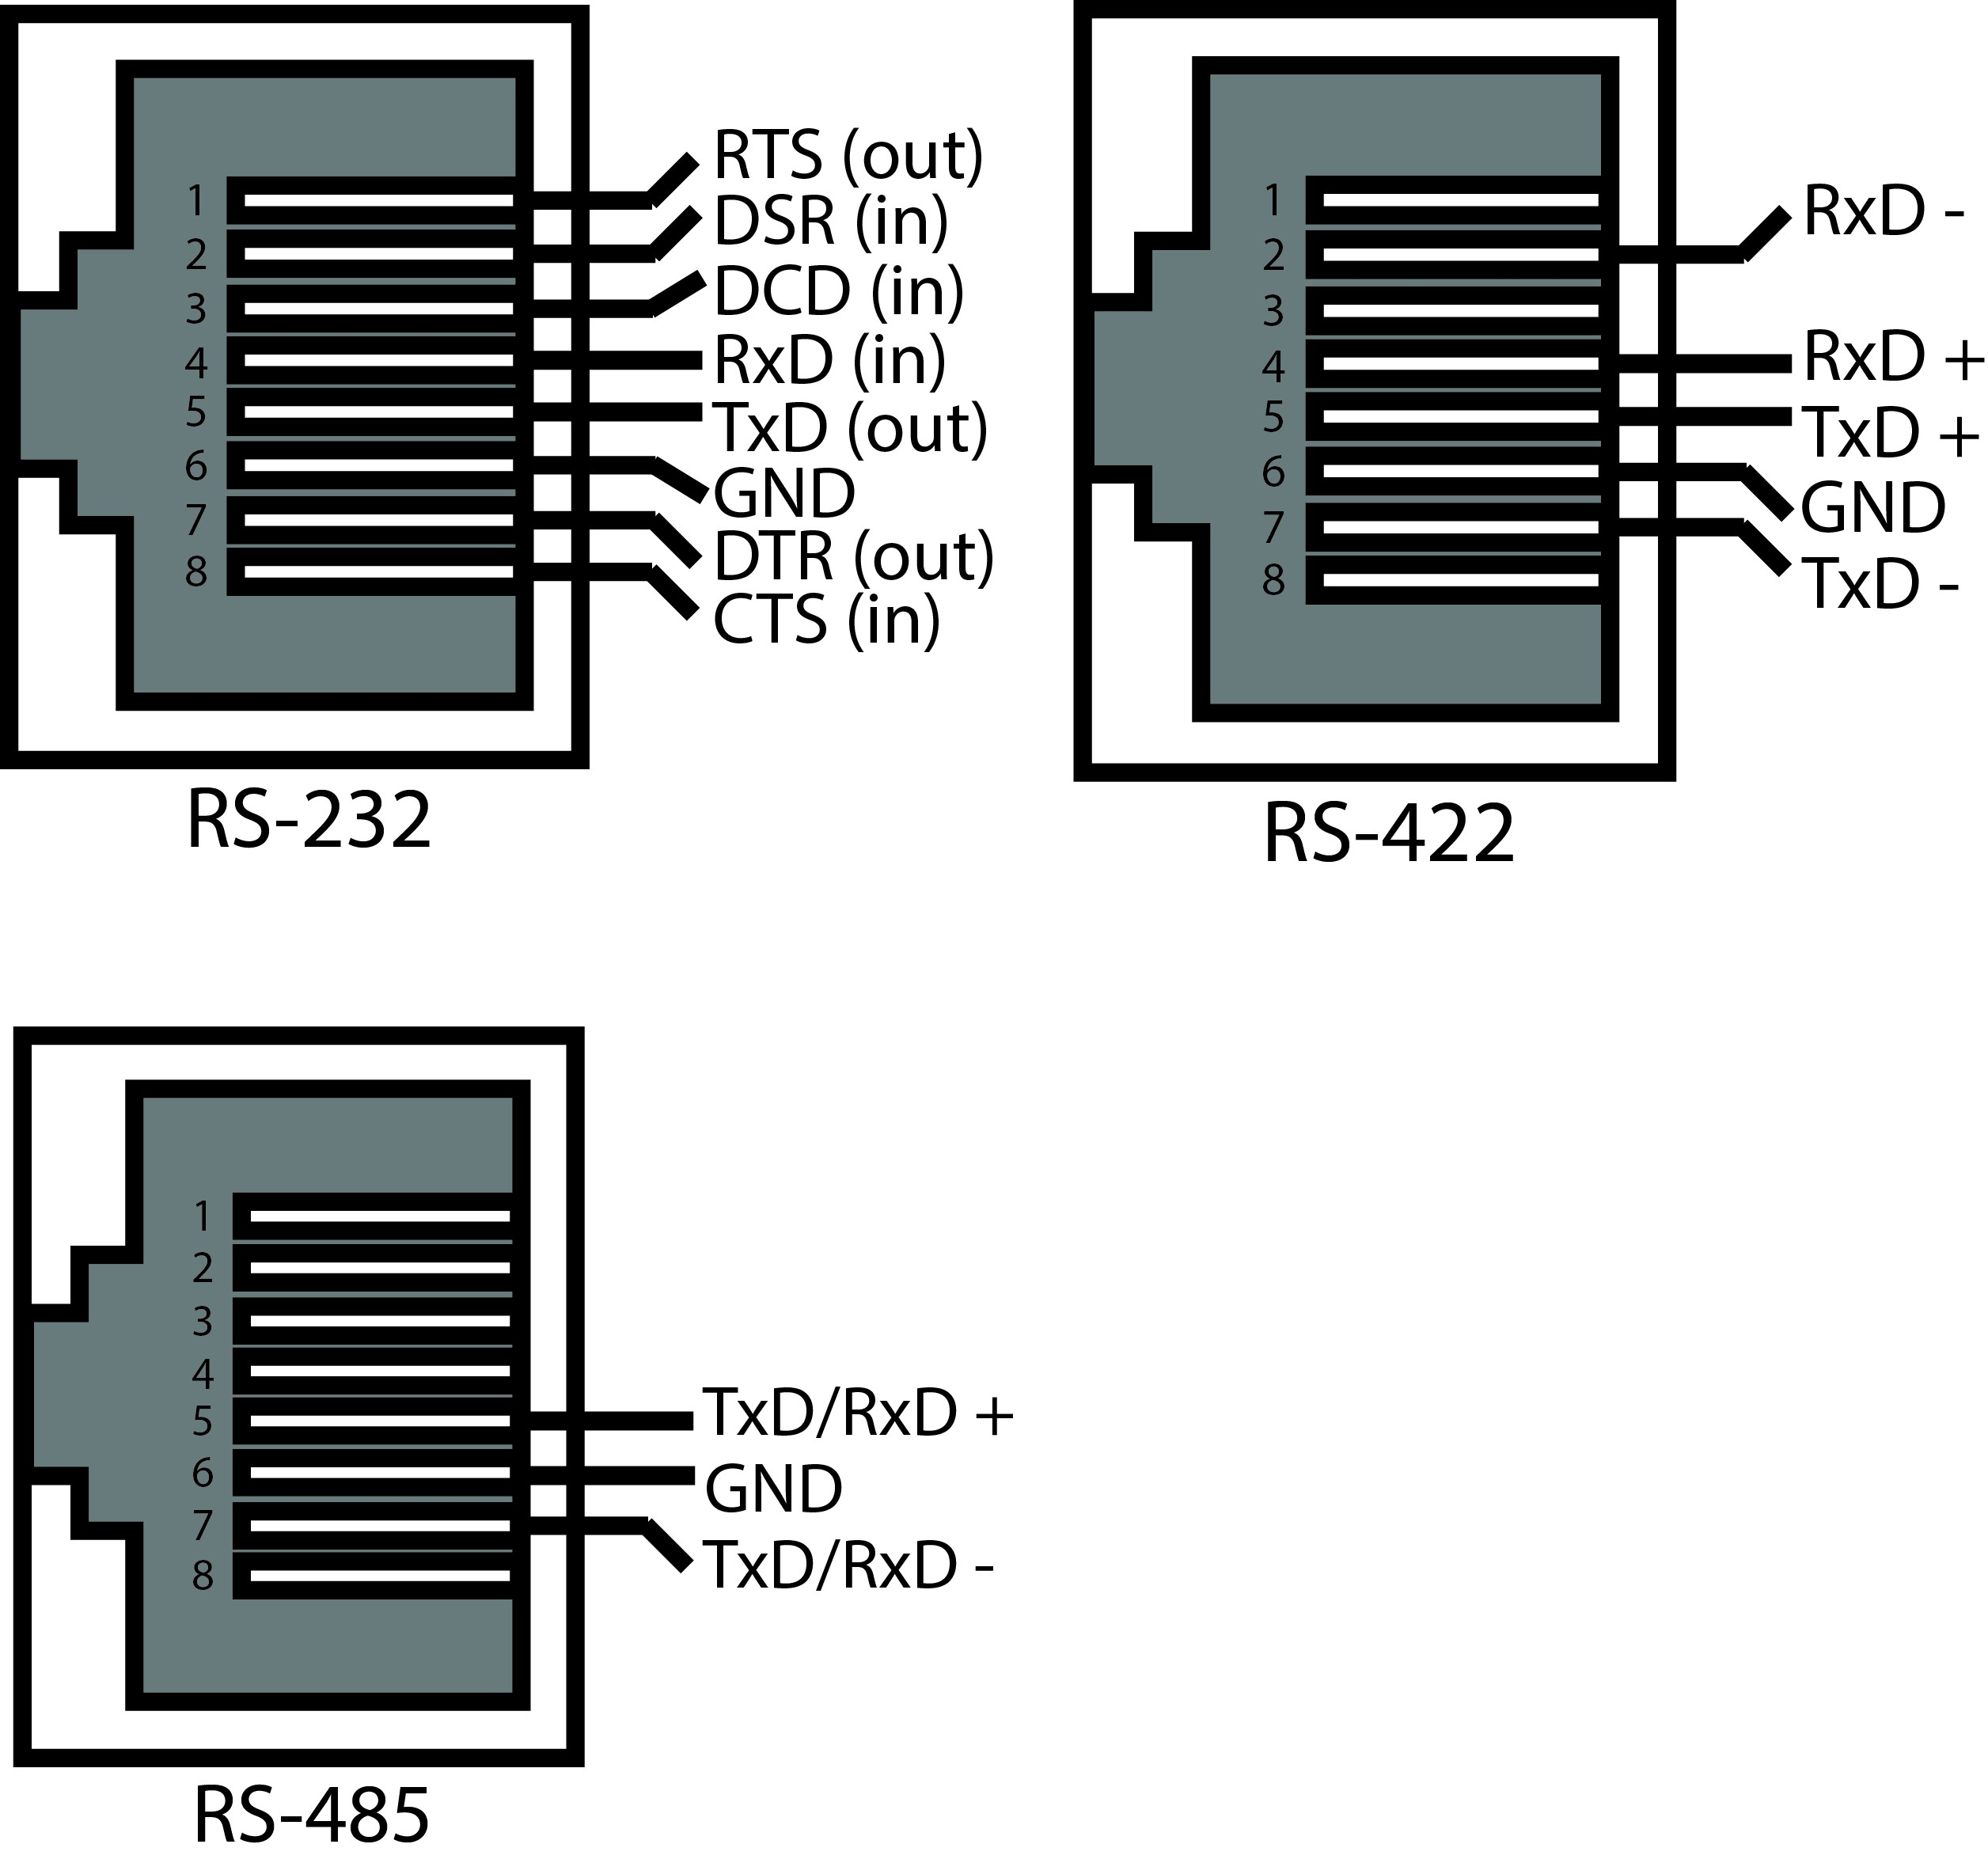 rs485 2 wire connection diagram 1993 chevy 1500 starter wiring modbus my